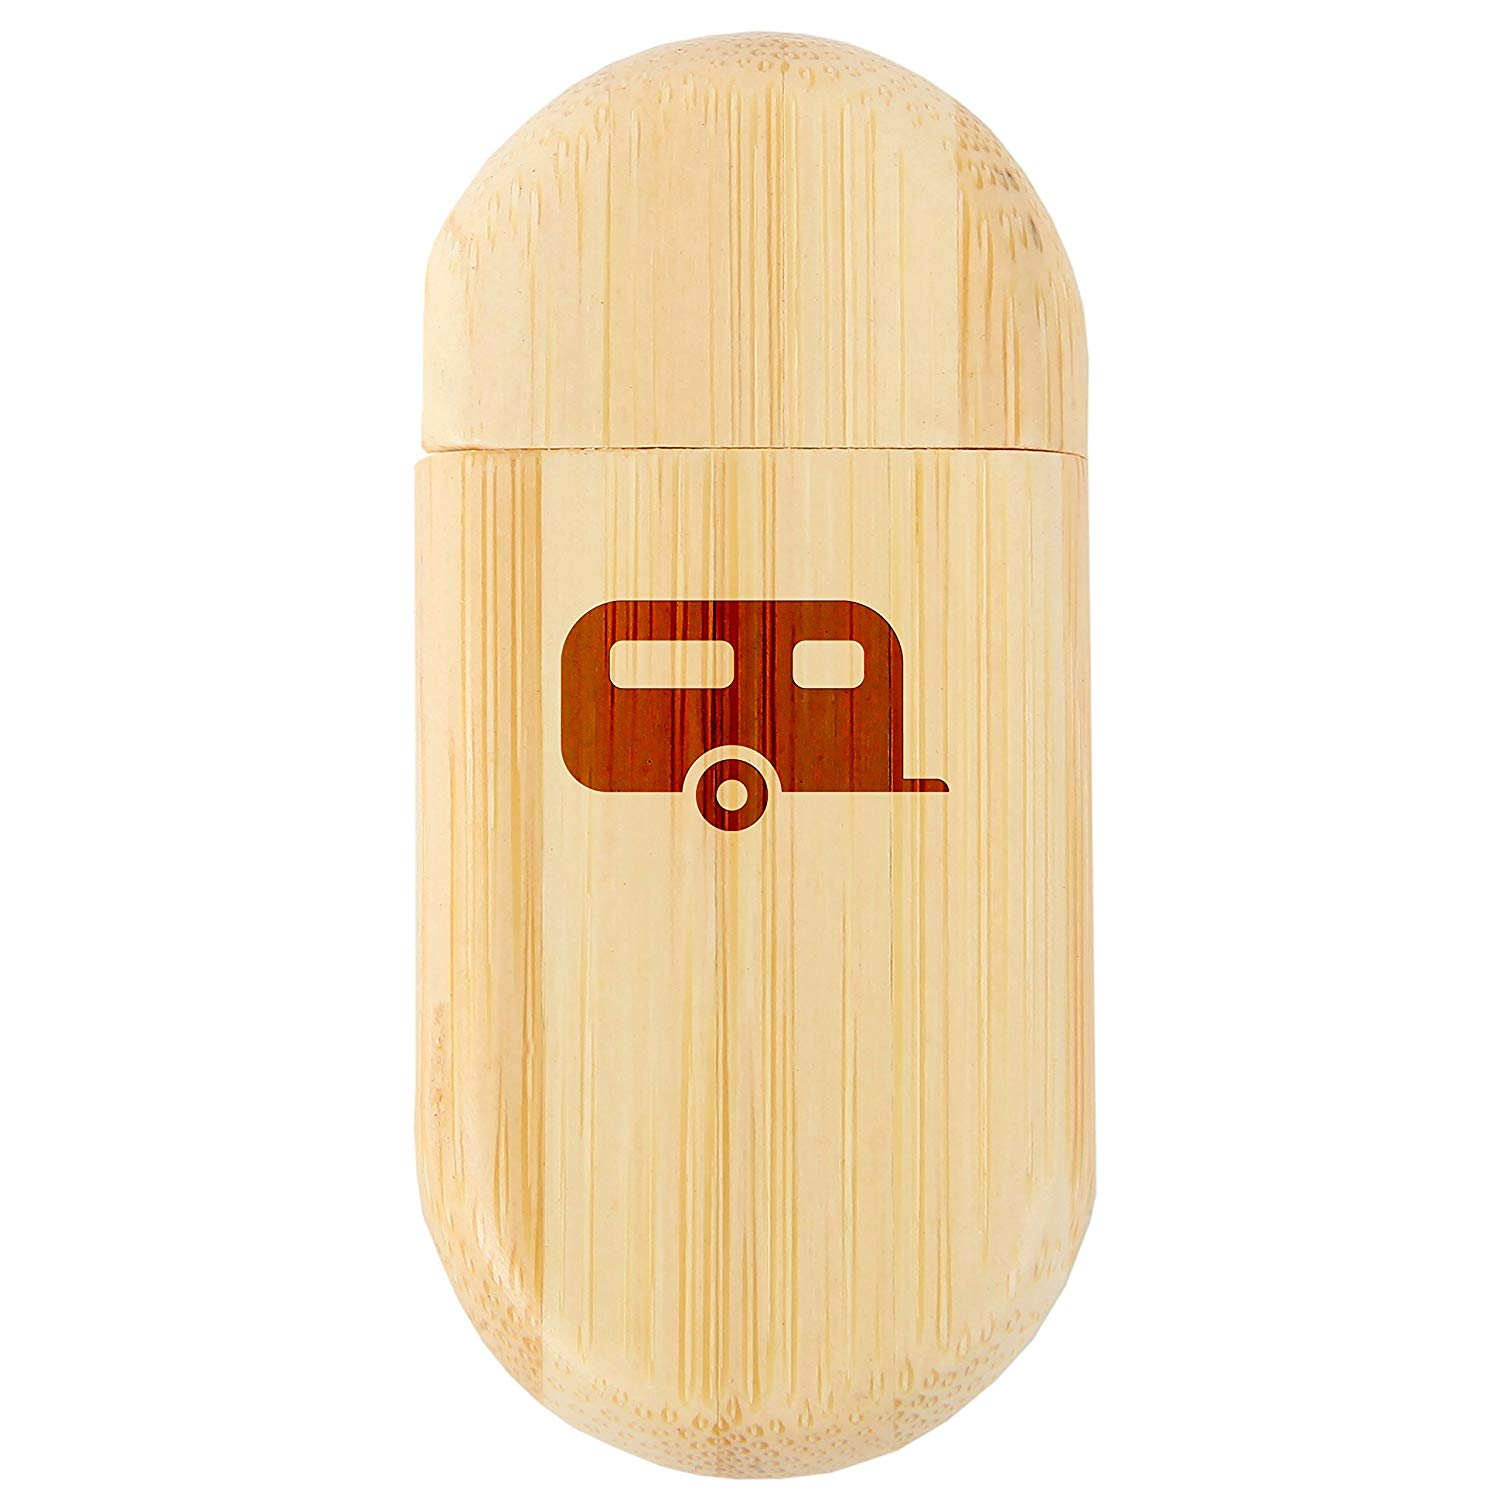 8Gb USB Gift for All Occasions Tennis 8Gb Bamboo USB Flash Drive with Rounded Corners Wood Flash Drive with Laser Engraving